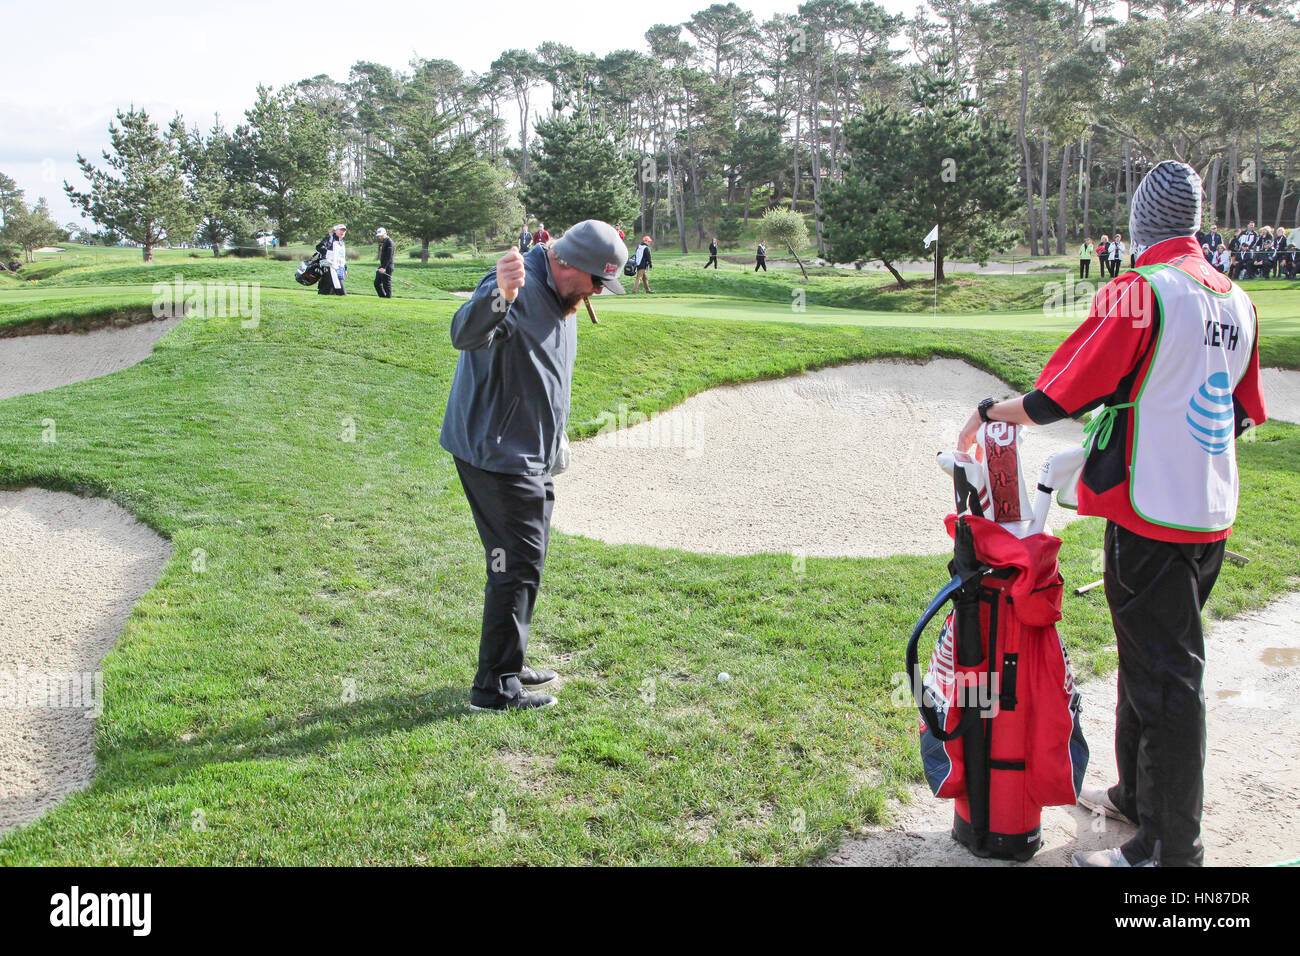 Pebble Beach, California, USA. 9th February, 2017.  Toby Keith, musician/radio star, contemplates a tricky chip - Stock Image